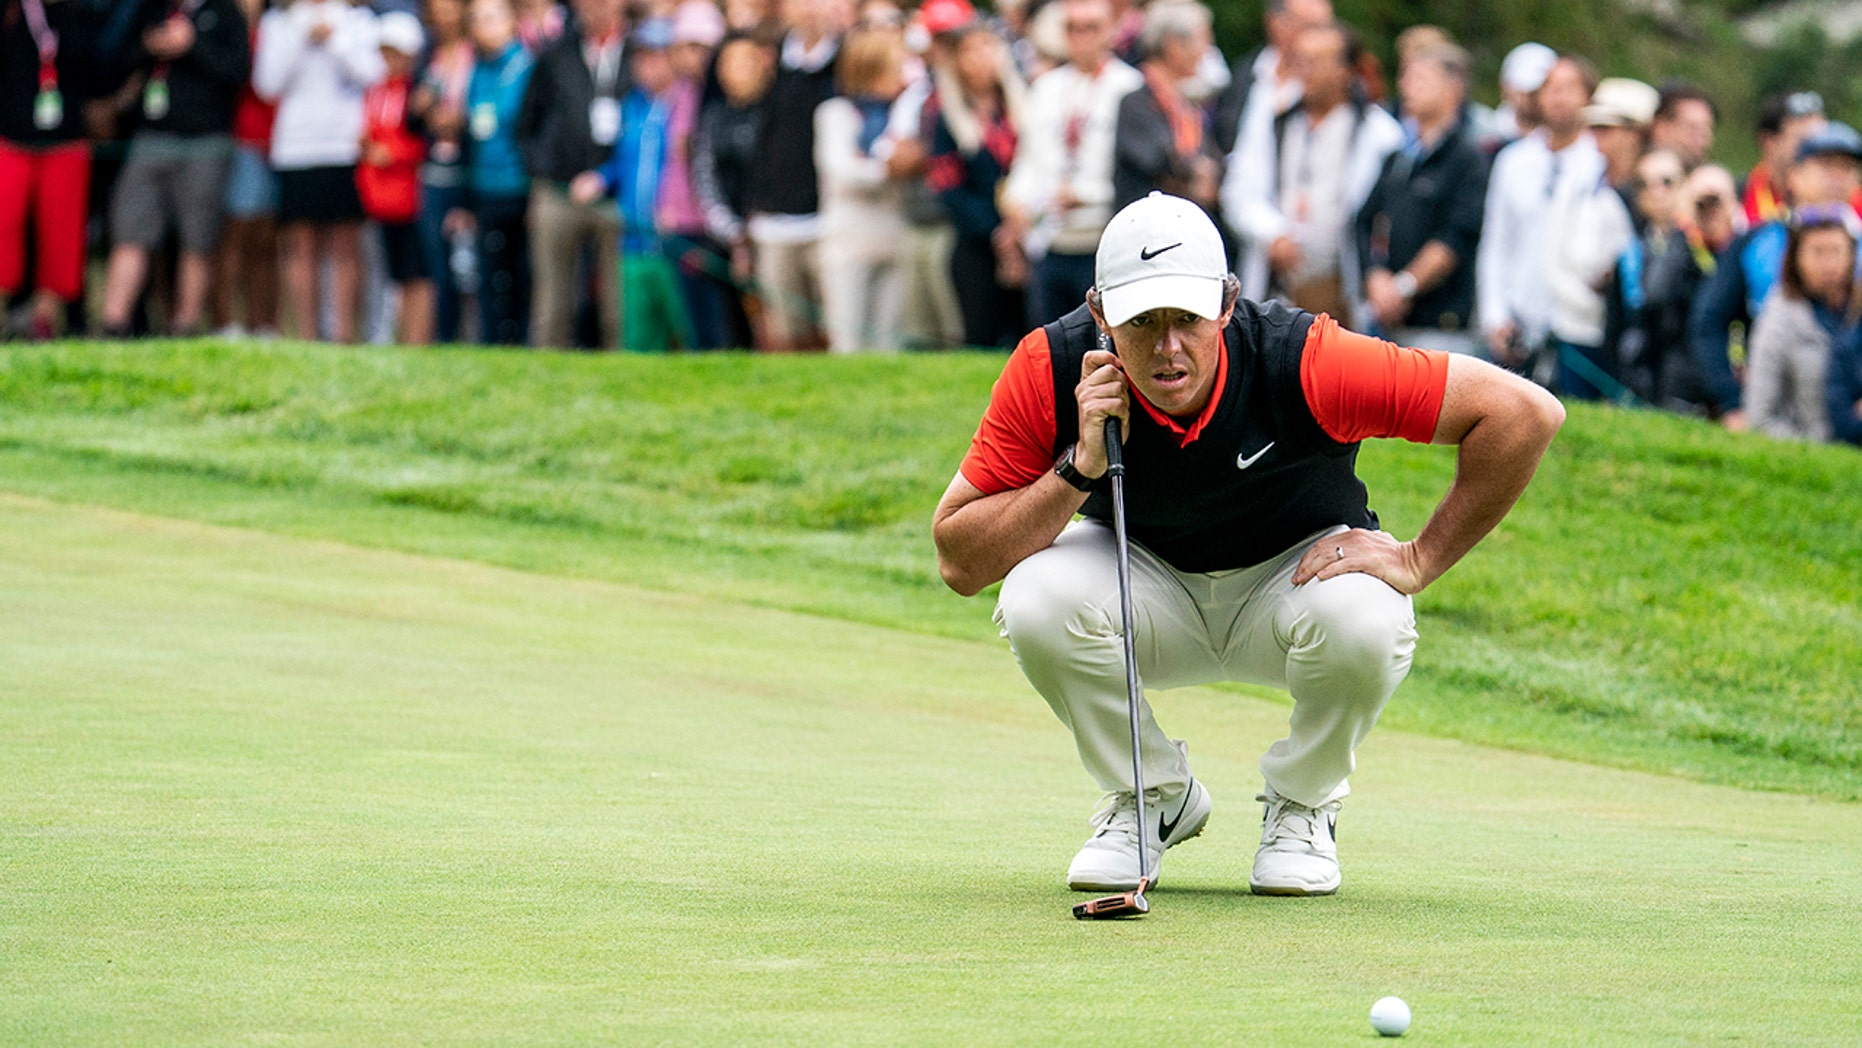 Rory McIlroy was stunned by his PGA Player of the Year win